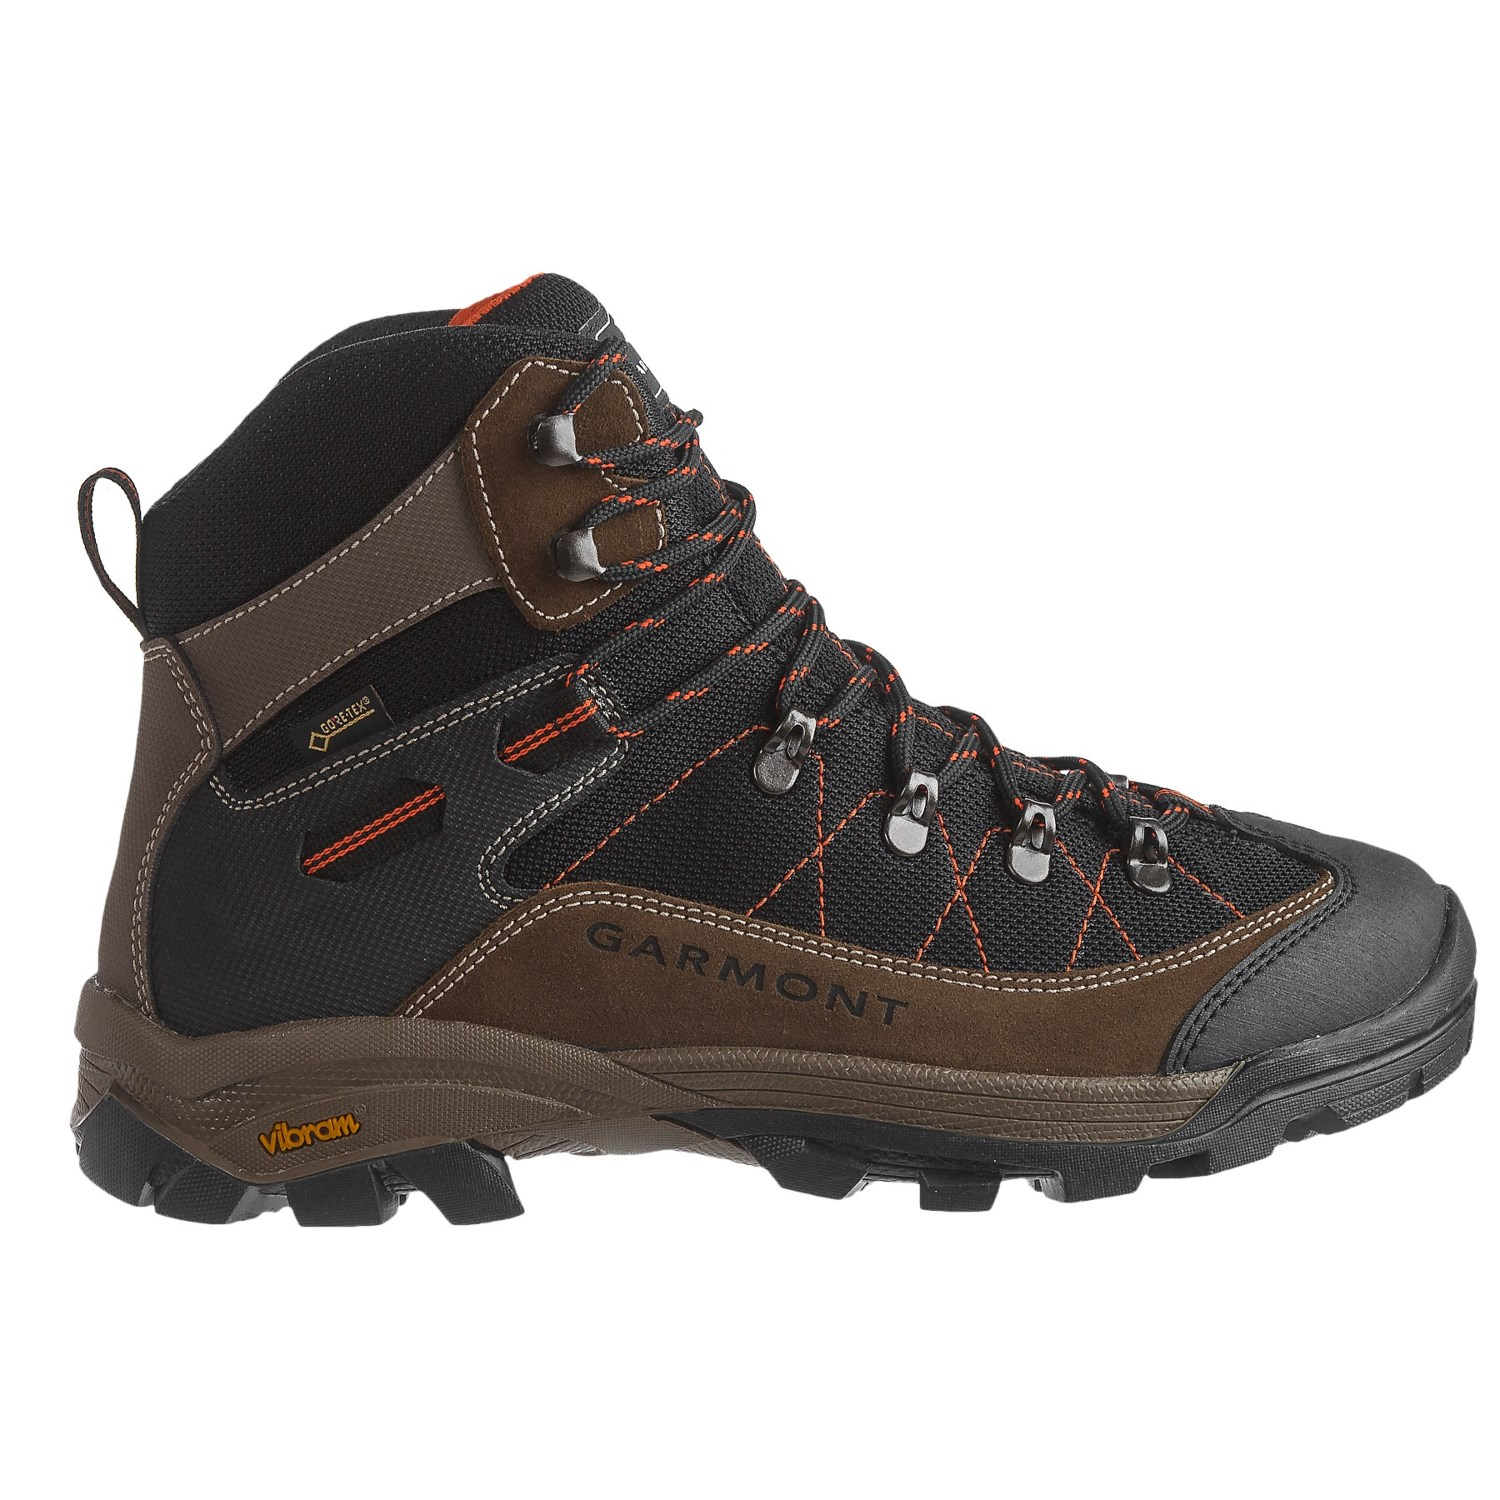 Garmont Antelao Gore Tex 174 Hiking Boots For Men Save 43